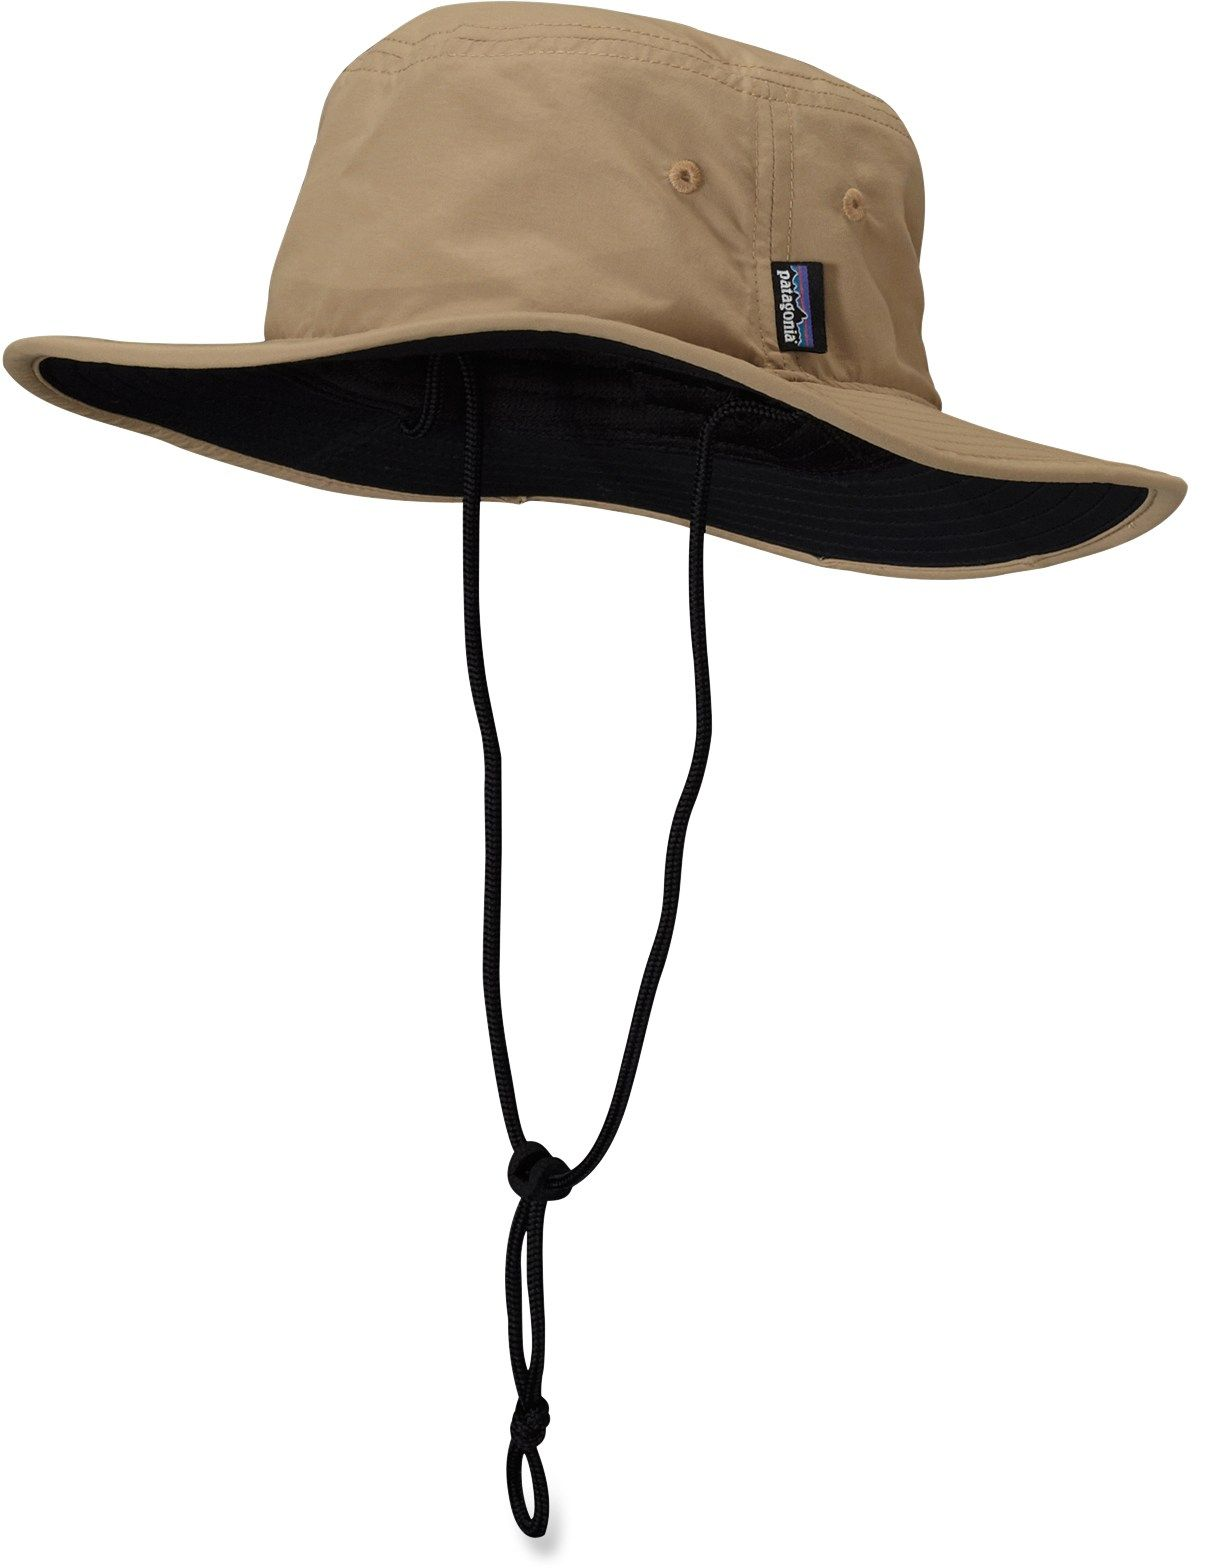 241a3eb0e6278 Patagonia Trim Brim Hat - Kids  at REI.com